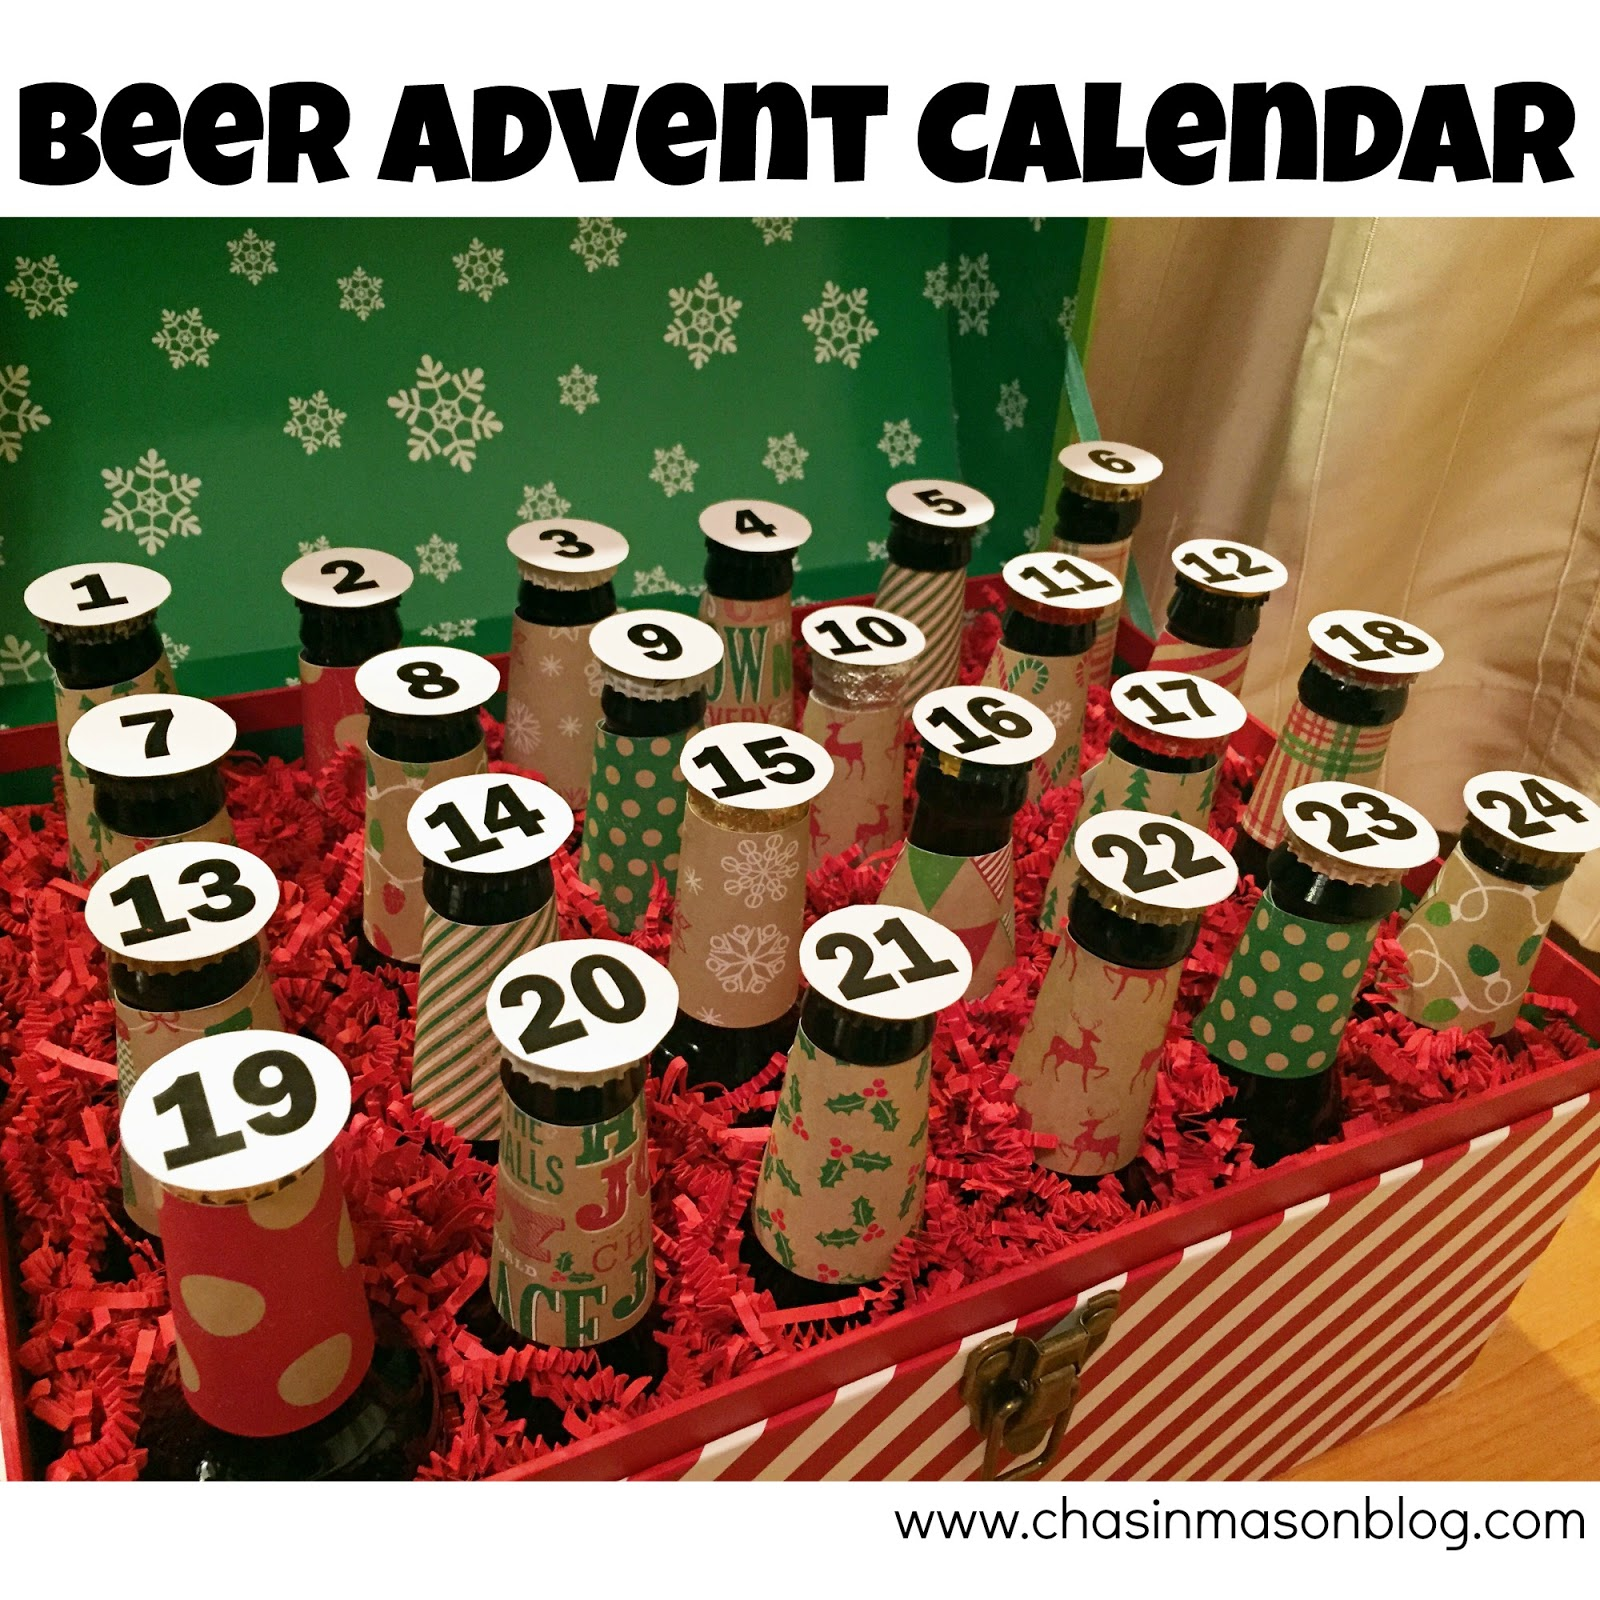 Chasin mason gifts for the husband diy beer advent calendar chasin mason beer advent calendar solutioingenieria